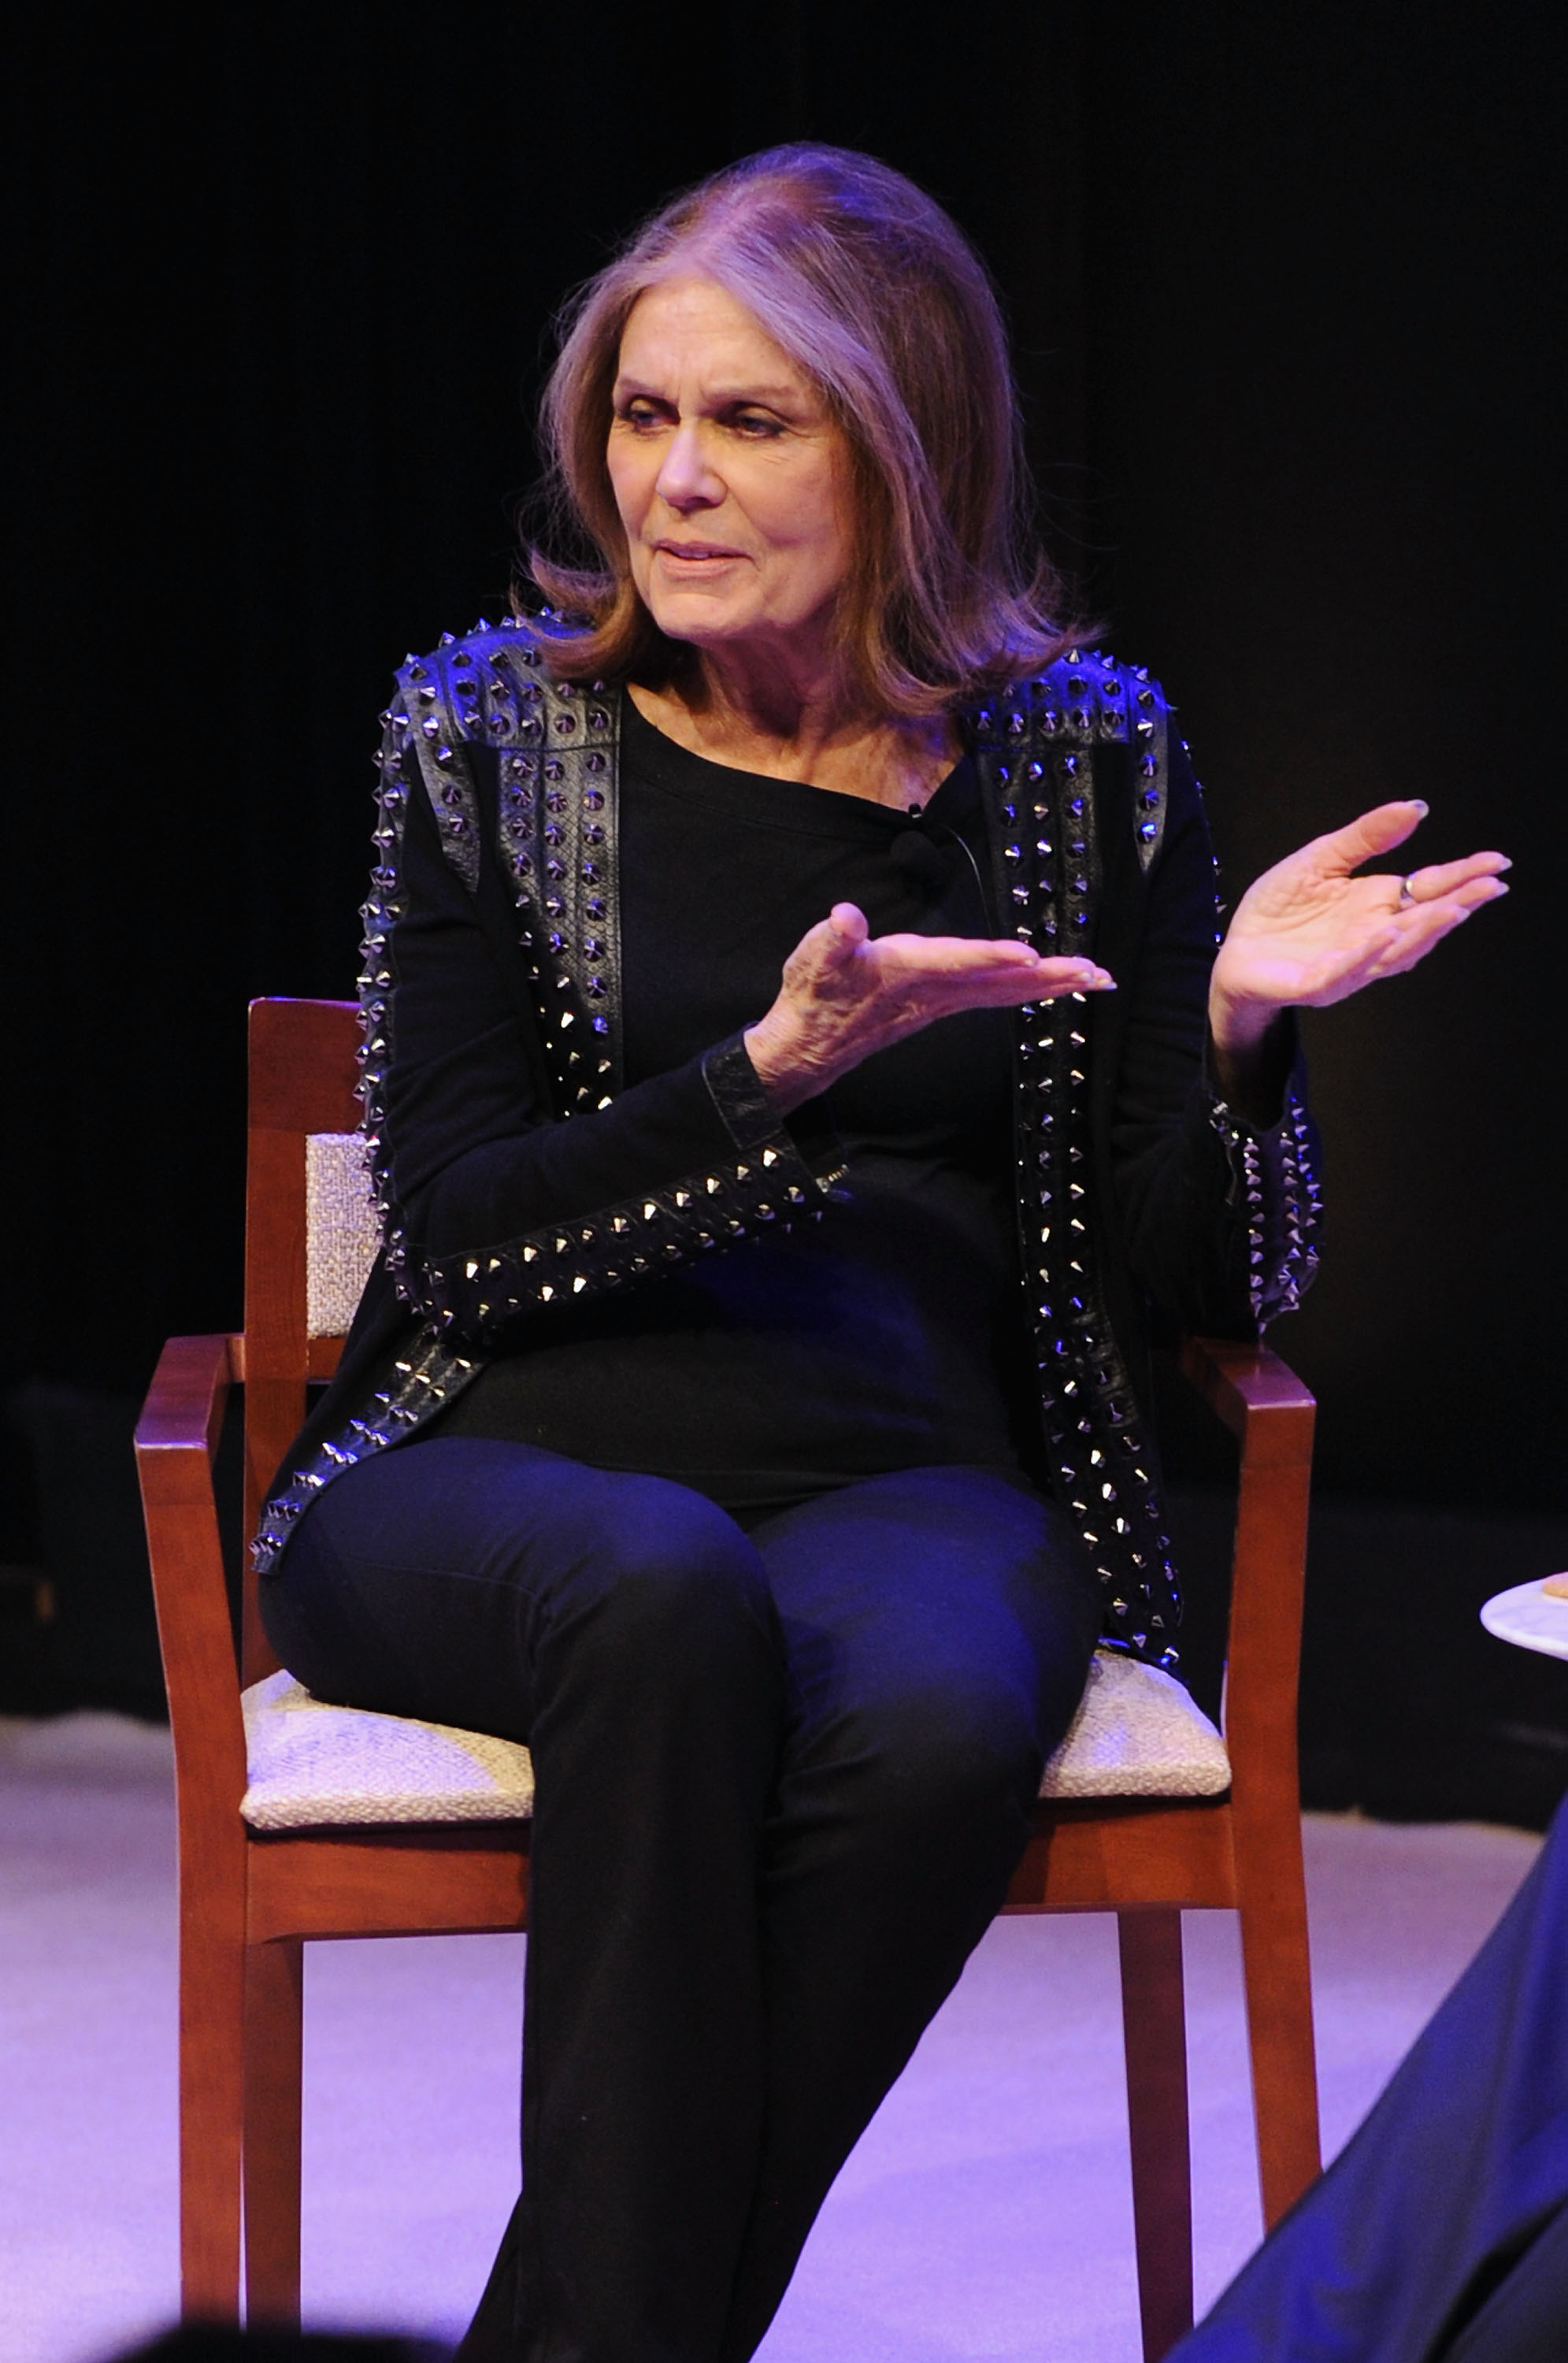 Activist and correspondent at VICE, Gloria Steinem speaks onstage during the VICELAND New York premiere screening of Gloria Steinem's  Woman  in New York City on May 4, 2016.